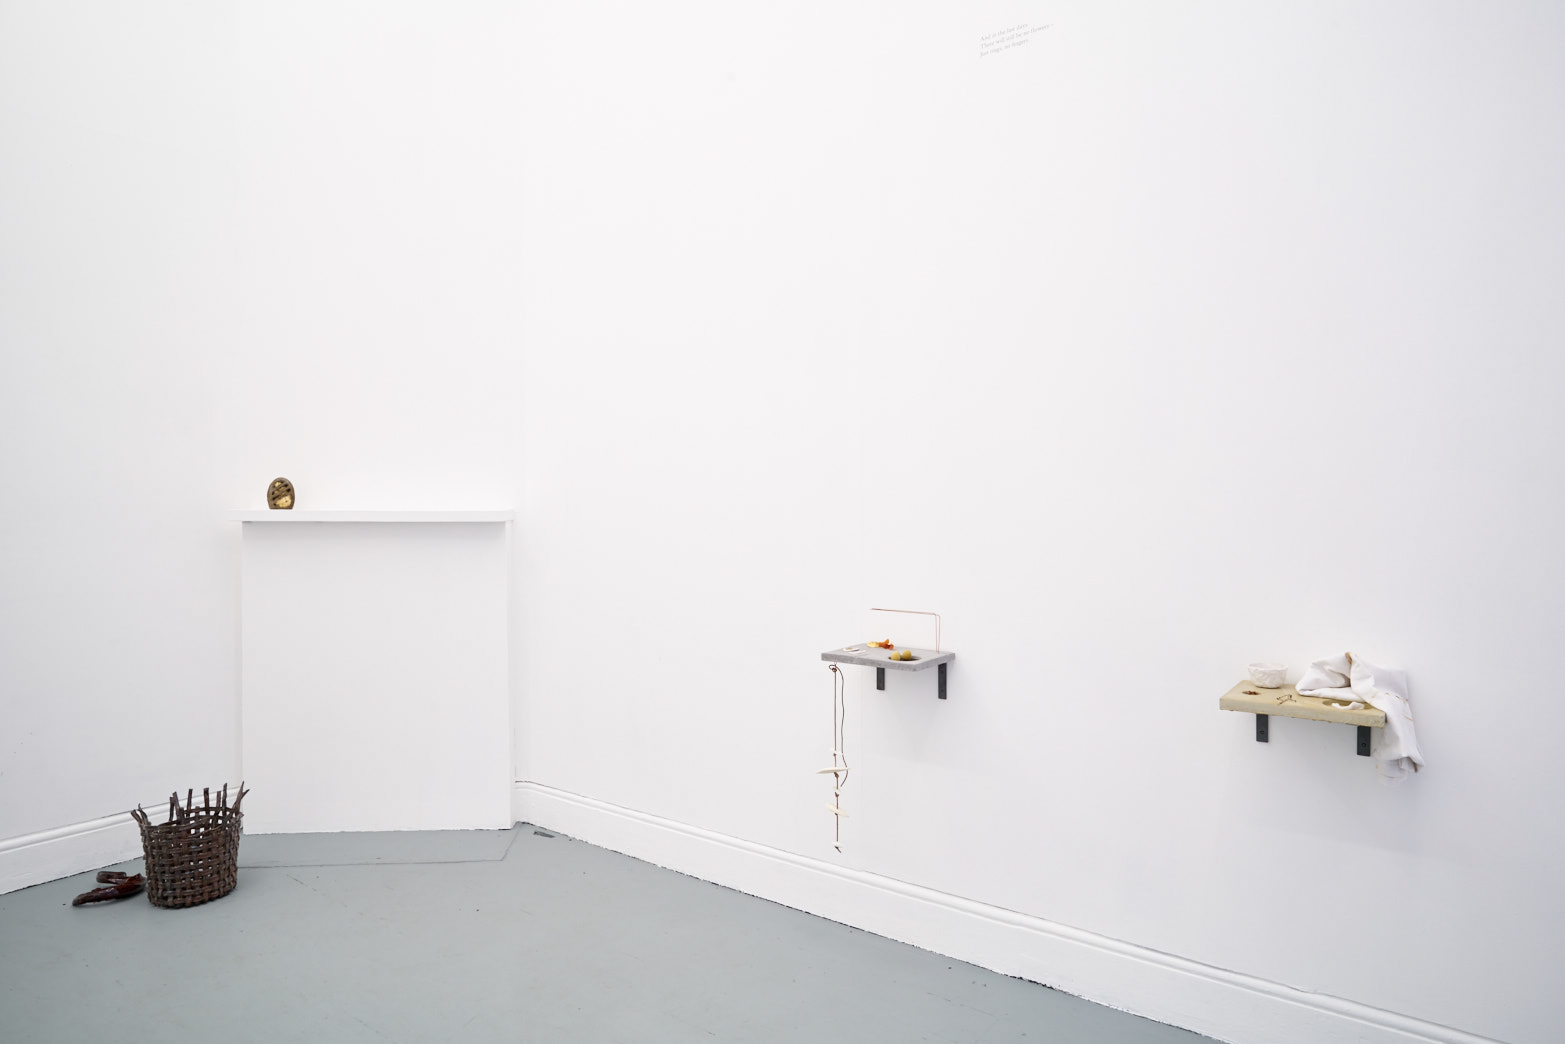 Becoming Plant, installation view, photo: Original&theCopy